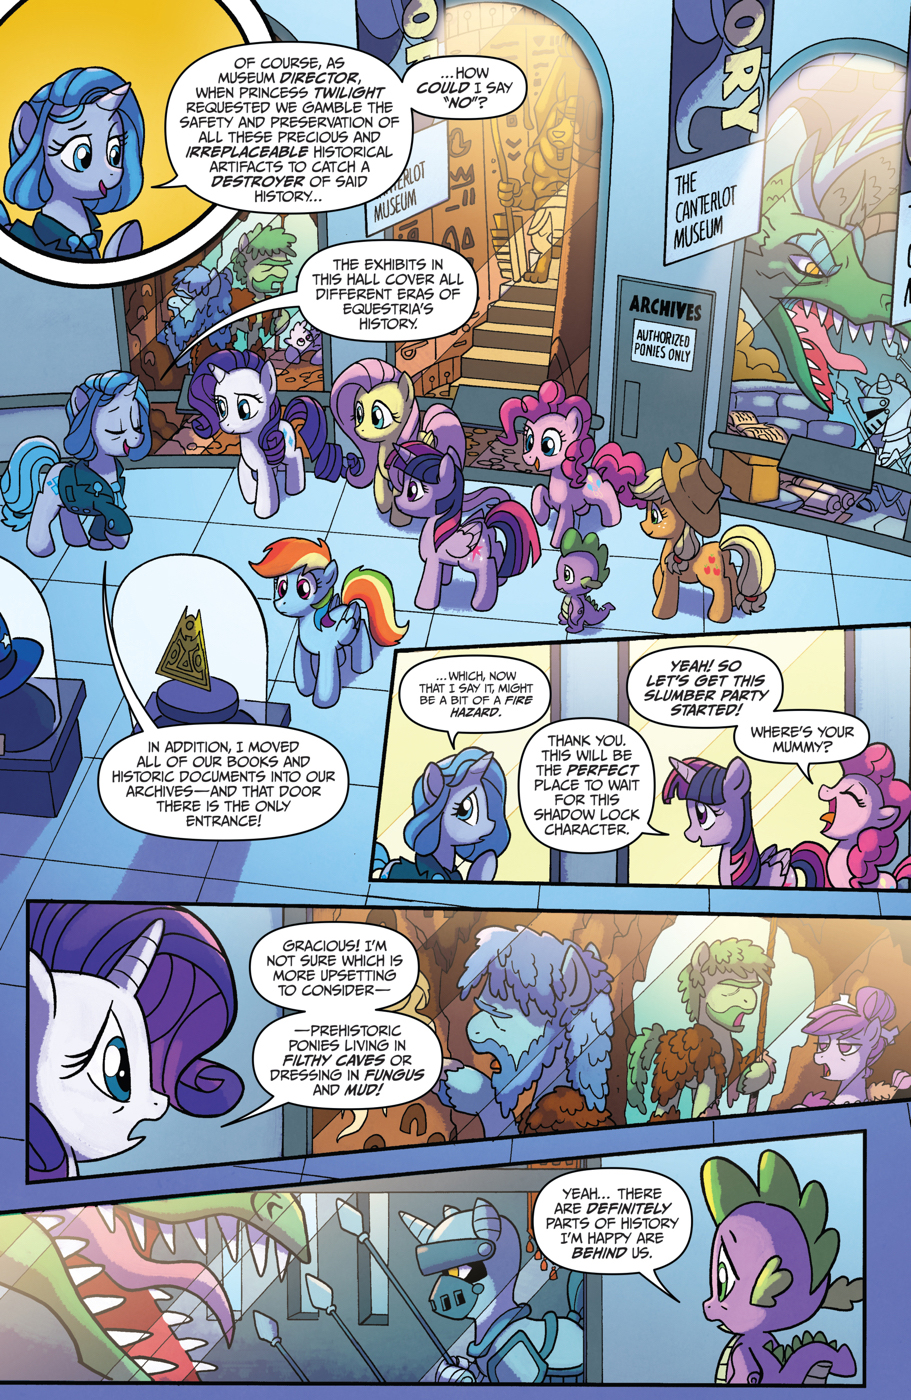 Read online My Little Pony: Friendship is Magic comic -  Issue #52 - 18